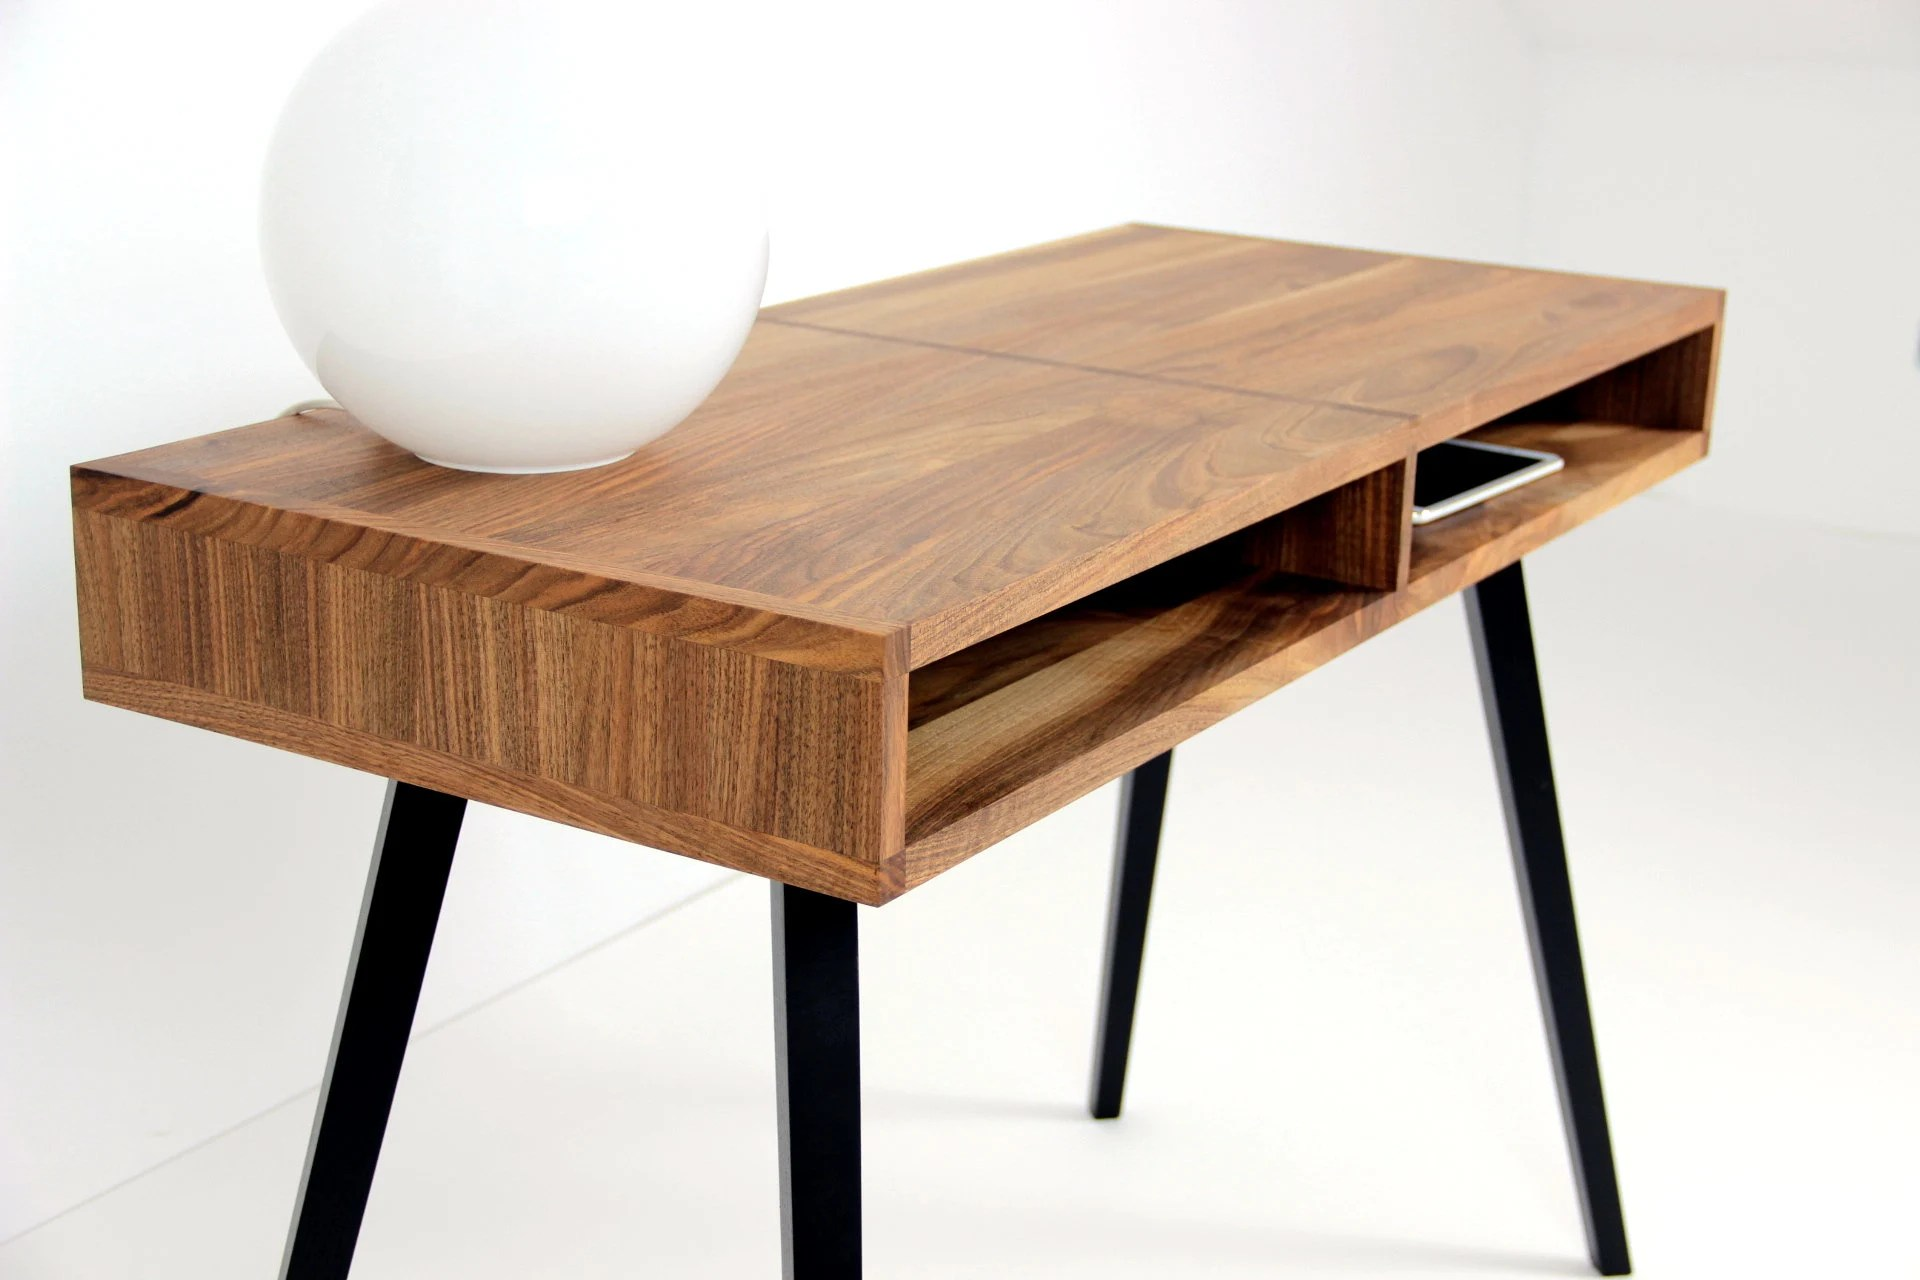 Schreibtische Modern Modern Desk Mid Century Desk Solid Walnut Desk Wooden Desk Table En Noyer Office Desk Custom Made Desk Schreibtisch Bureau Desk